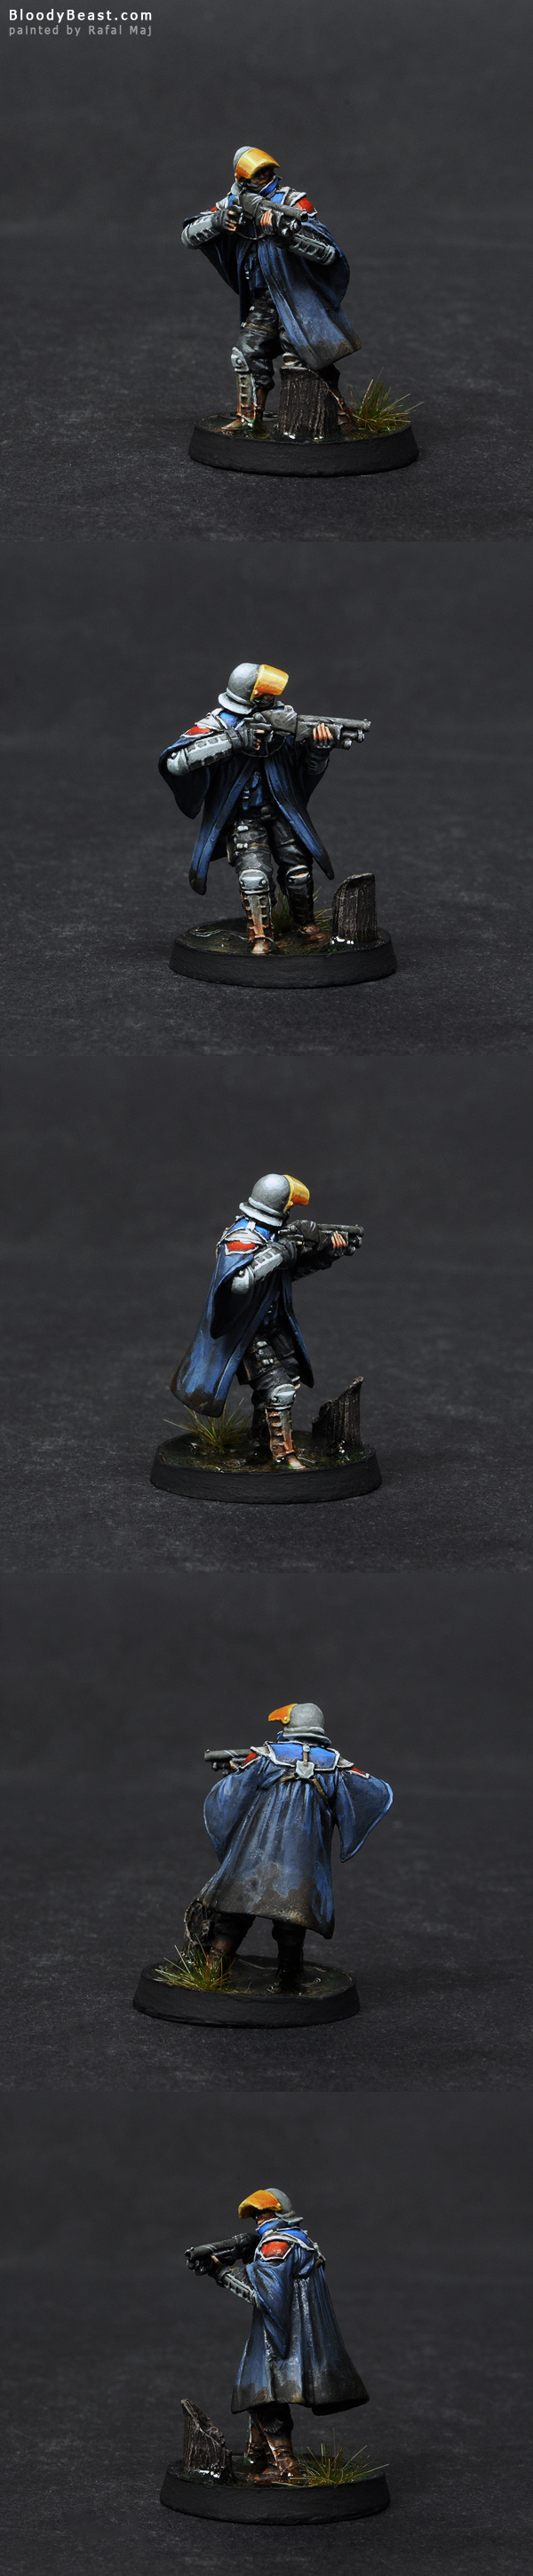 Ariadna Loup-Garous Boarding Shotgun painted by Rafal Maj (BloodyBeast.com)